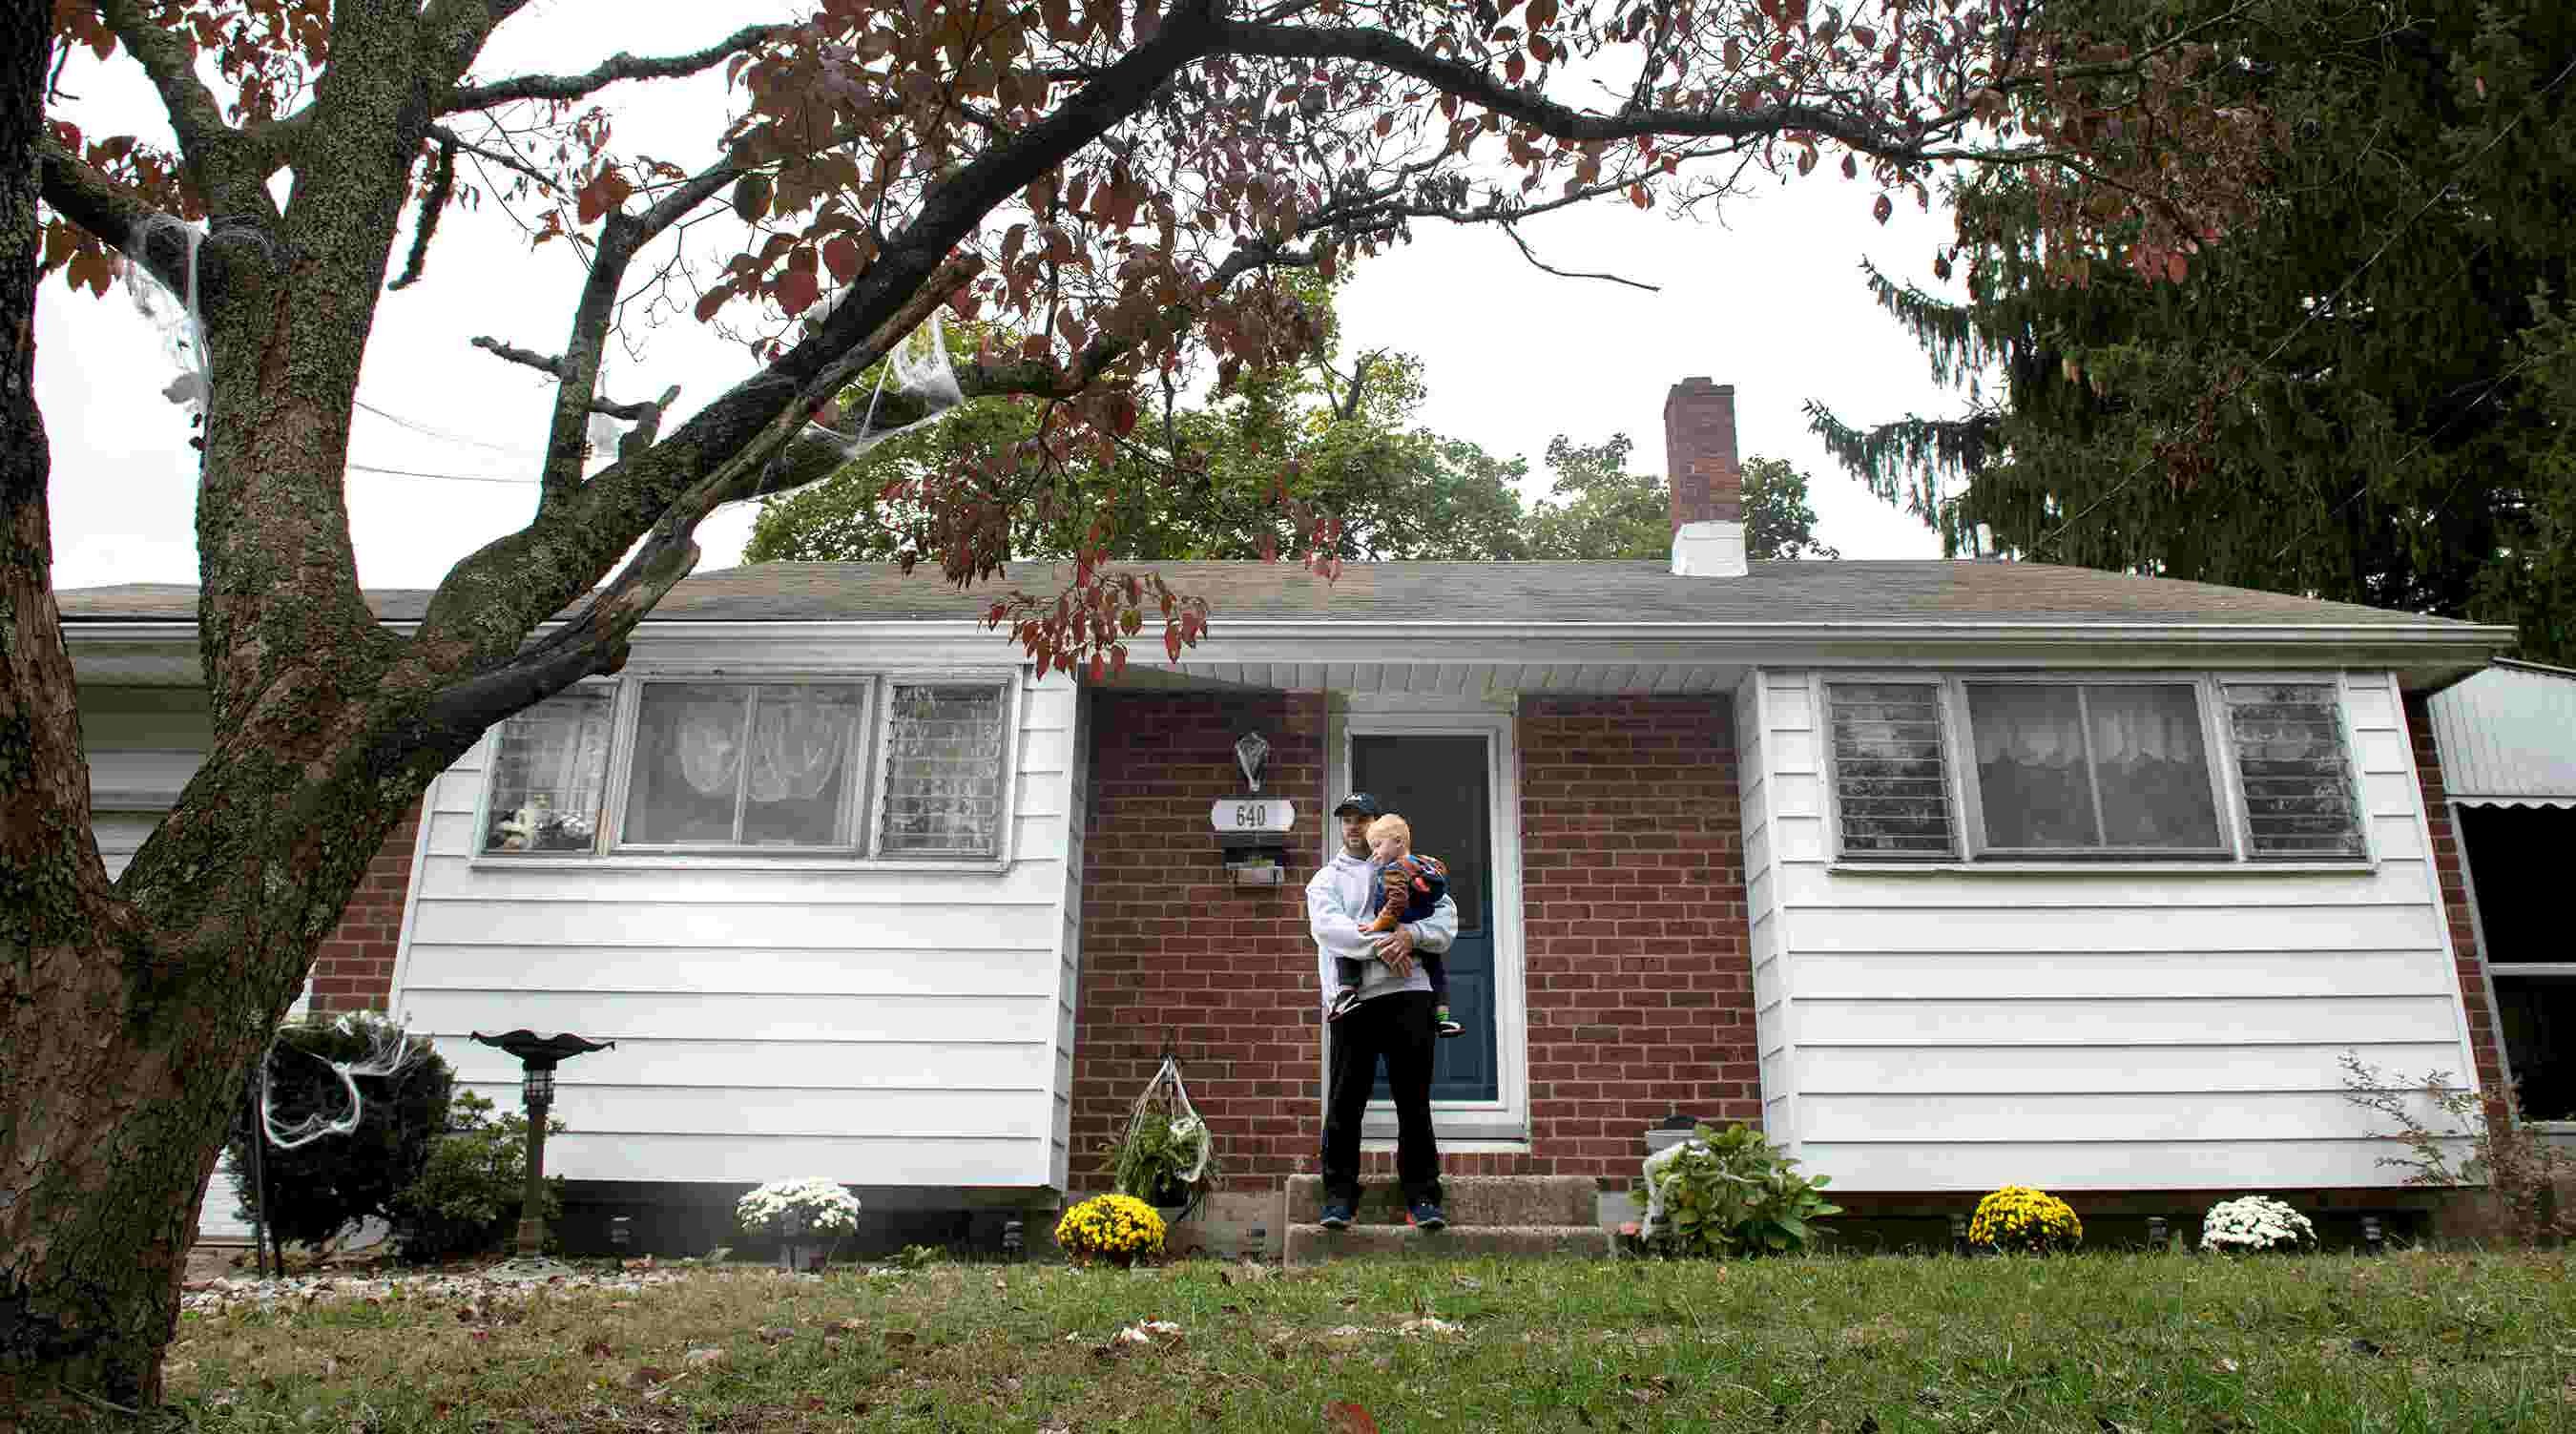 'Ghost Nation' team determines source of paranormal activity at South Jersey home